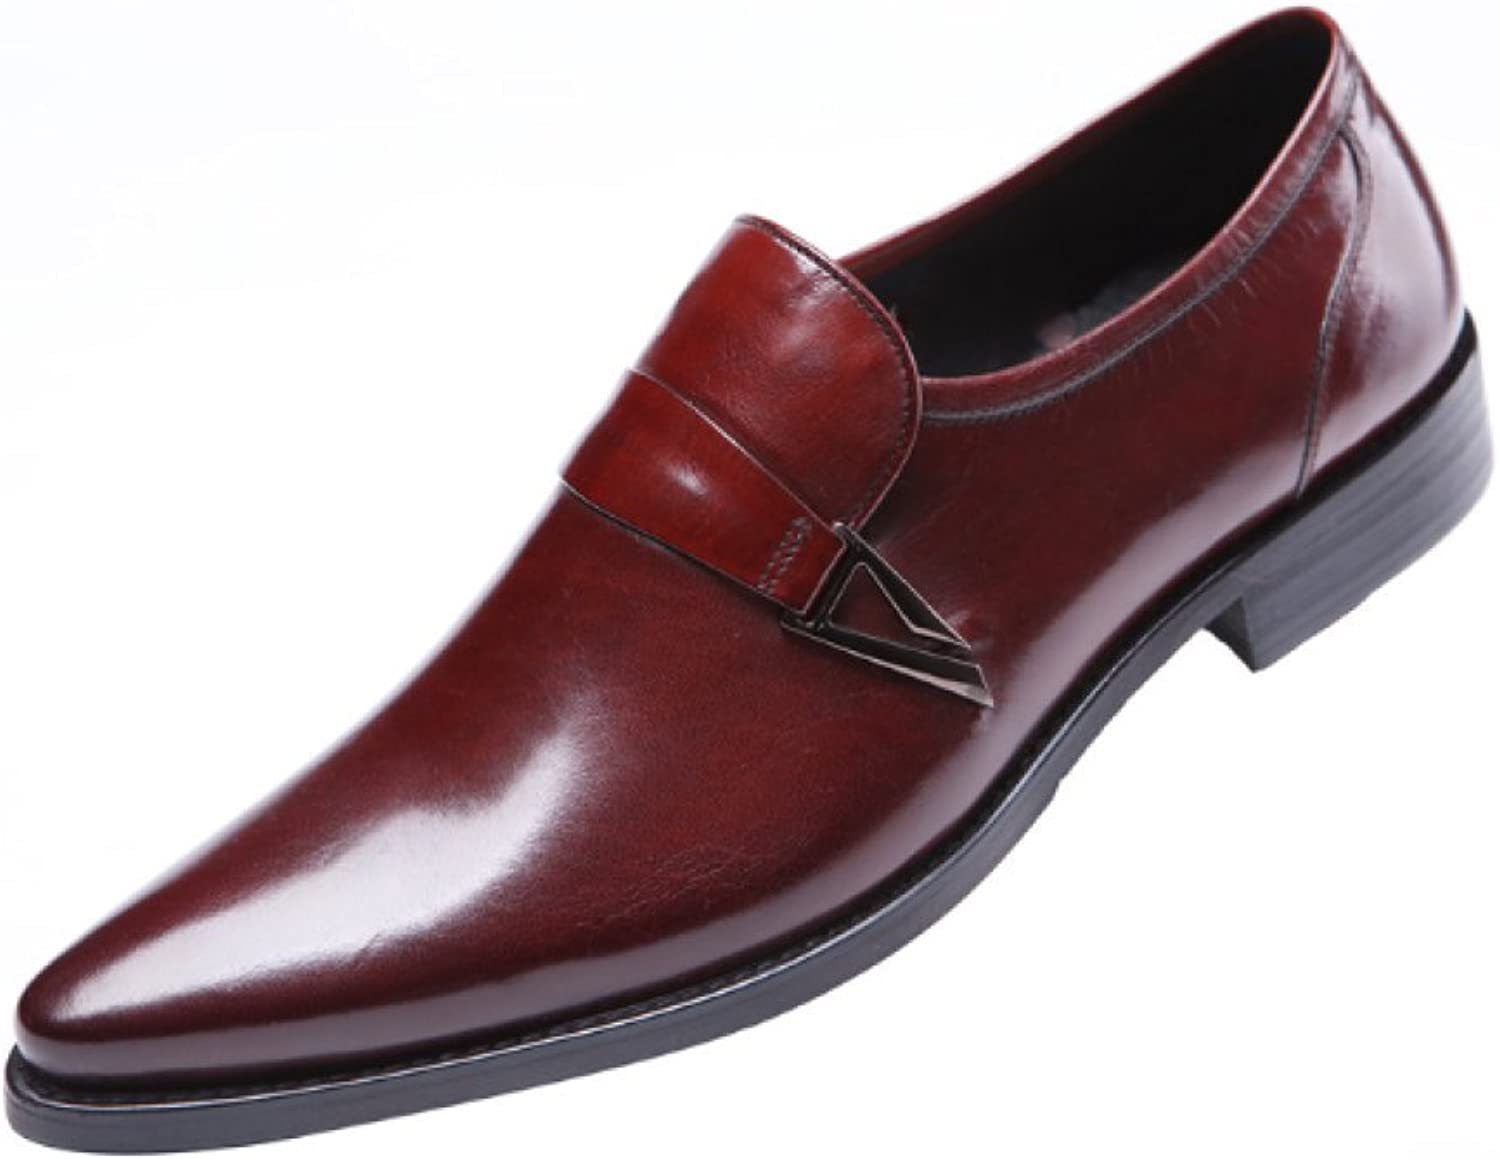 NTUMT Pointed, Stepping, Comfortable, Stylish, Breathable, Deodorizing, Wear Resistant